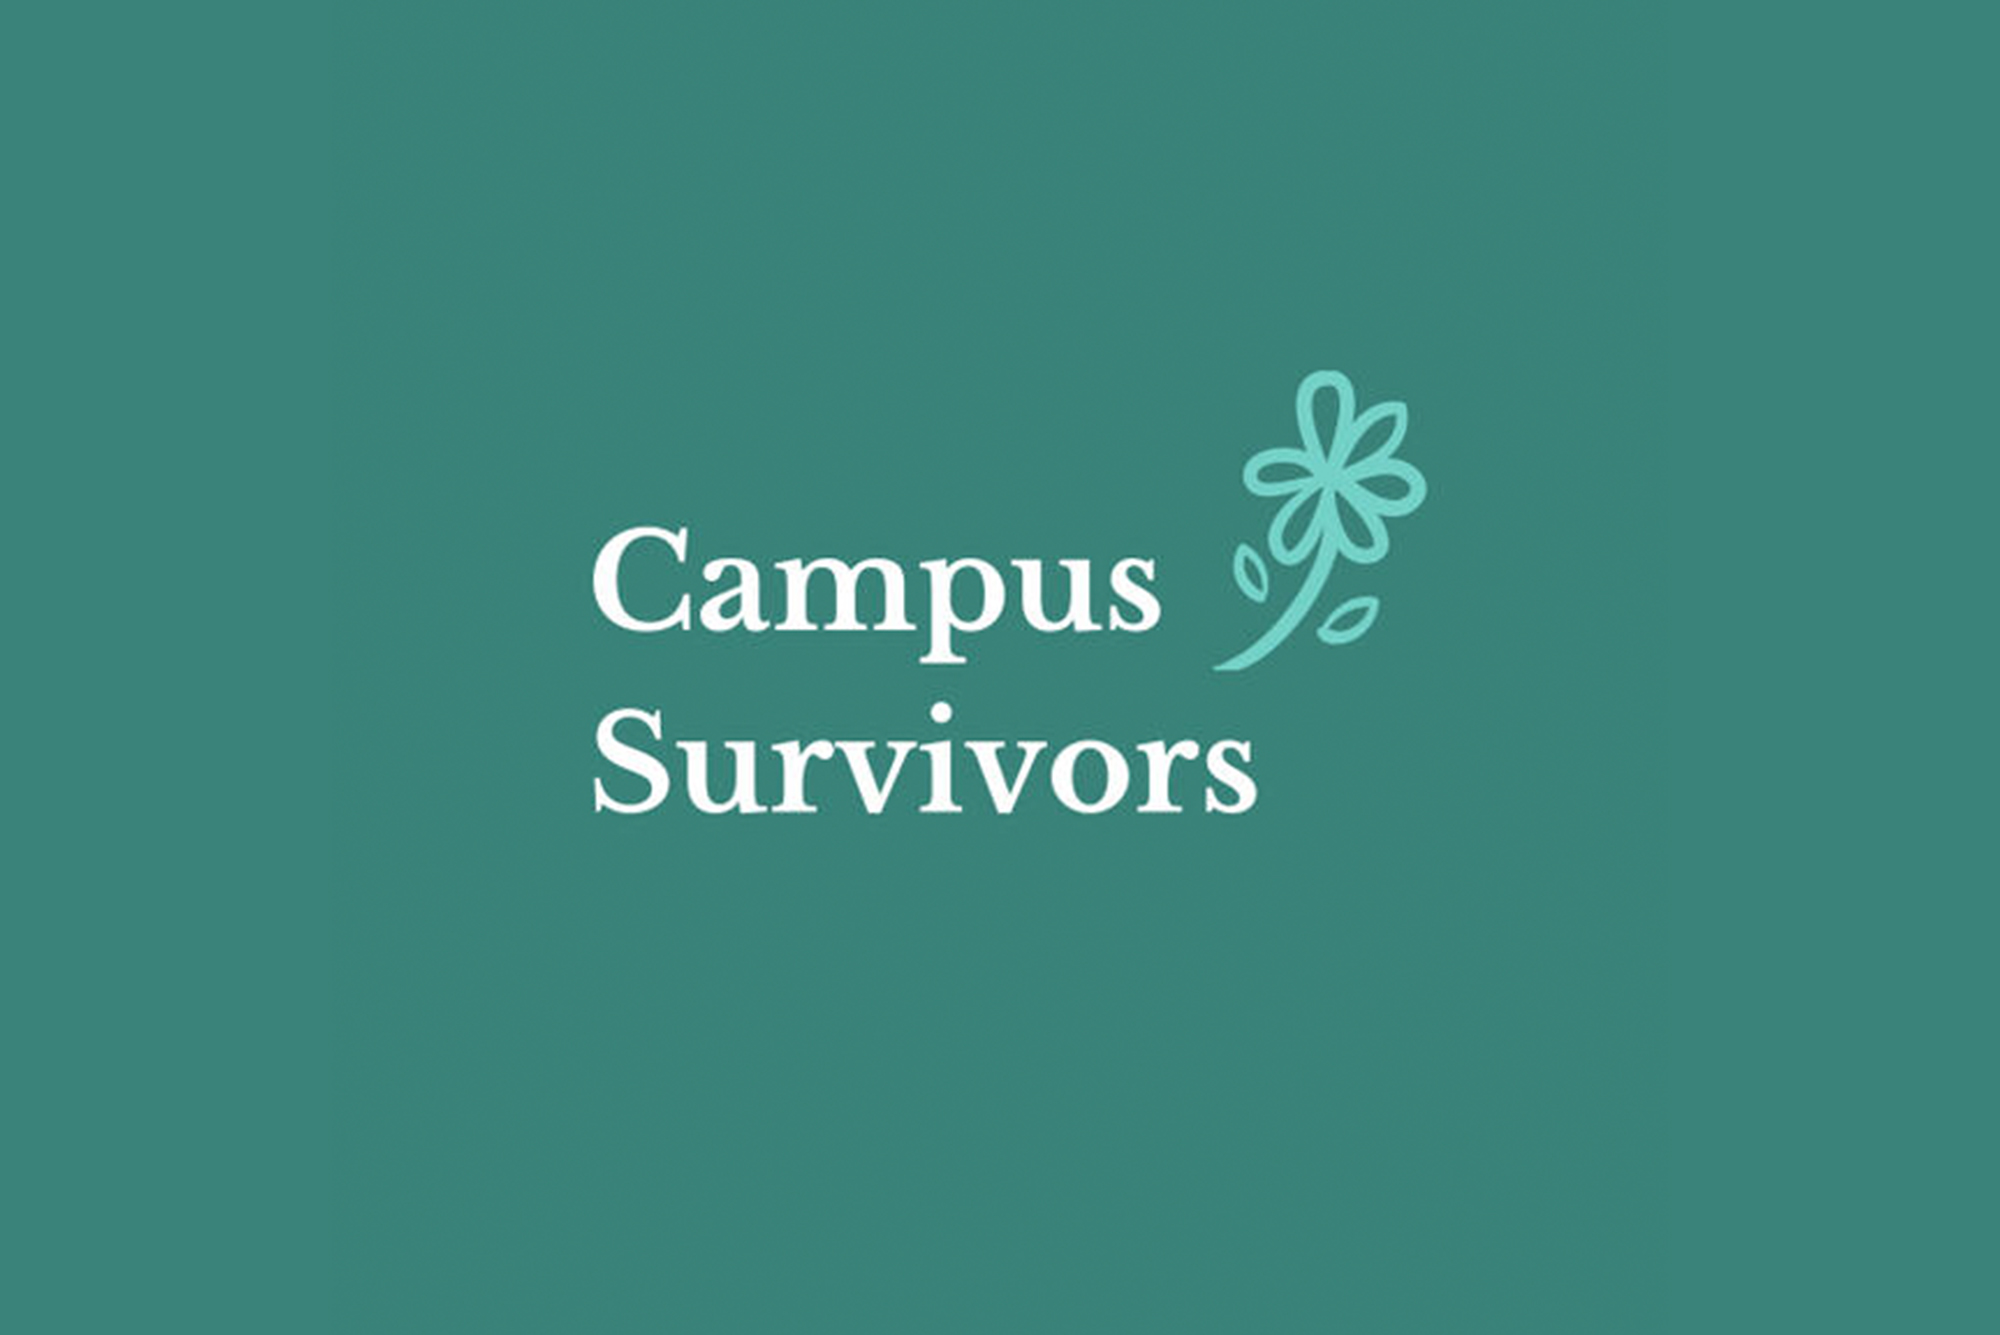 The logo for Campus Survivors, a safe place for survivors of assault, rape, or any kind of sexual harassment on Instagram, which has a light blue flower in the top right corner, on a greenish teal background.